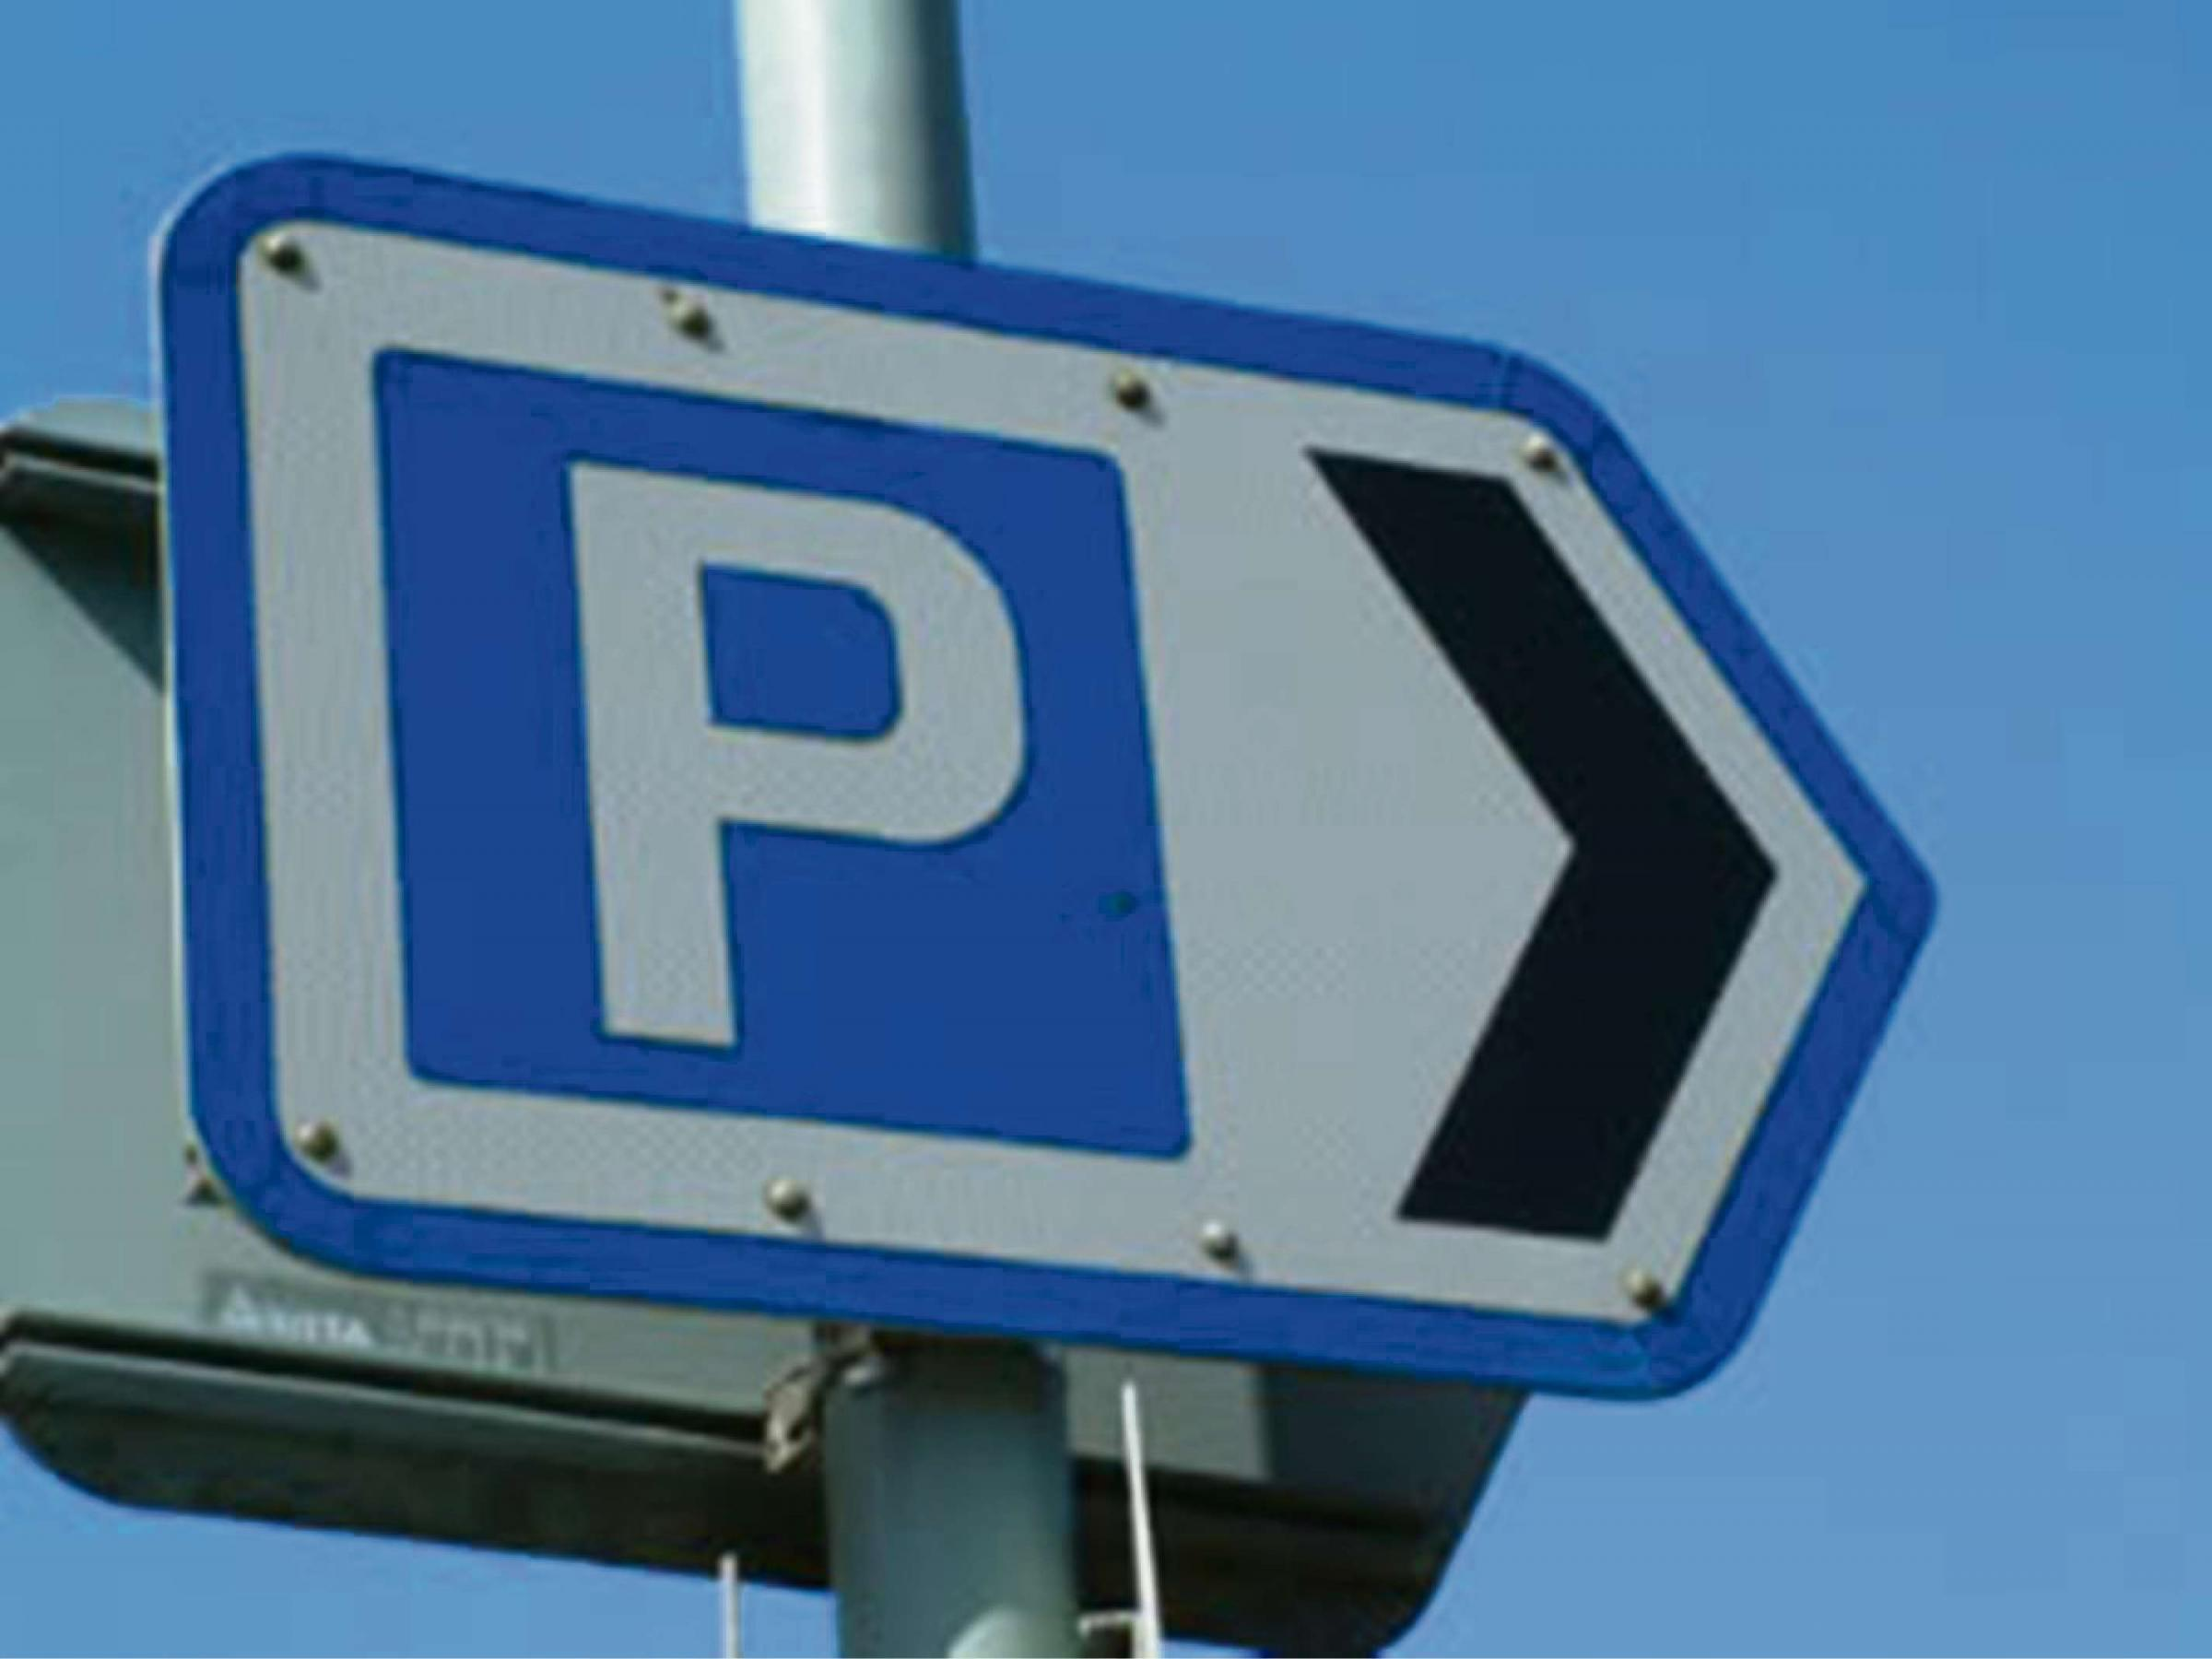 Council to review on-street parking across Dorset